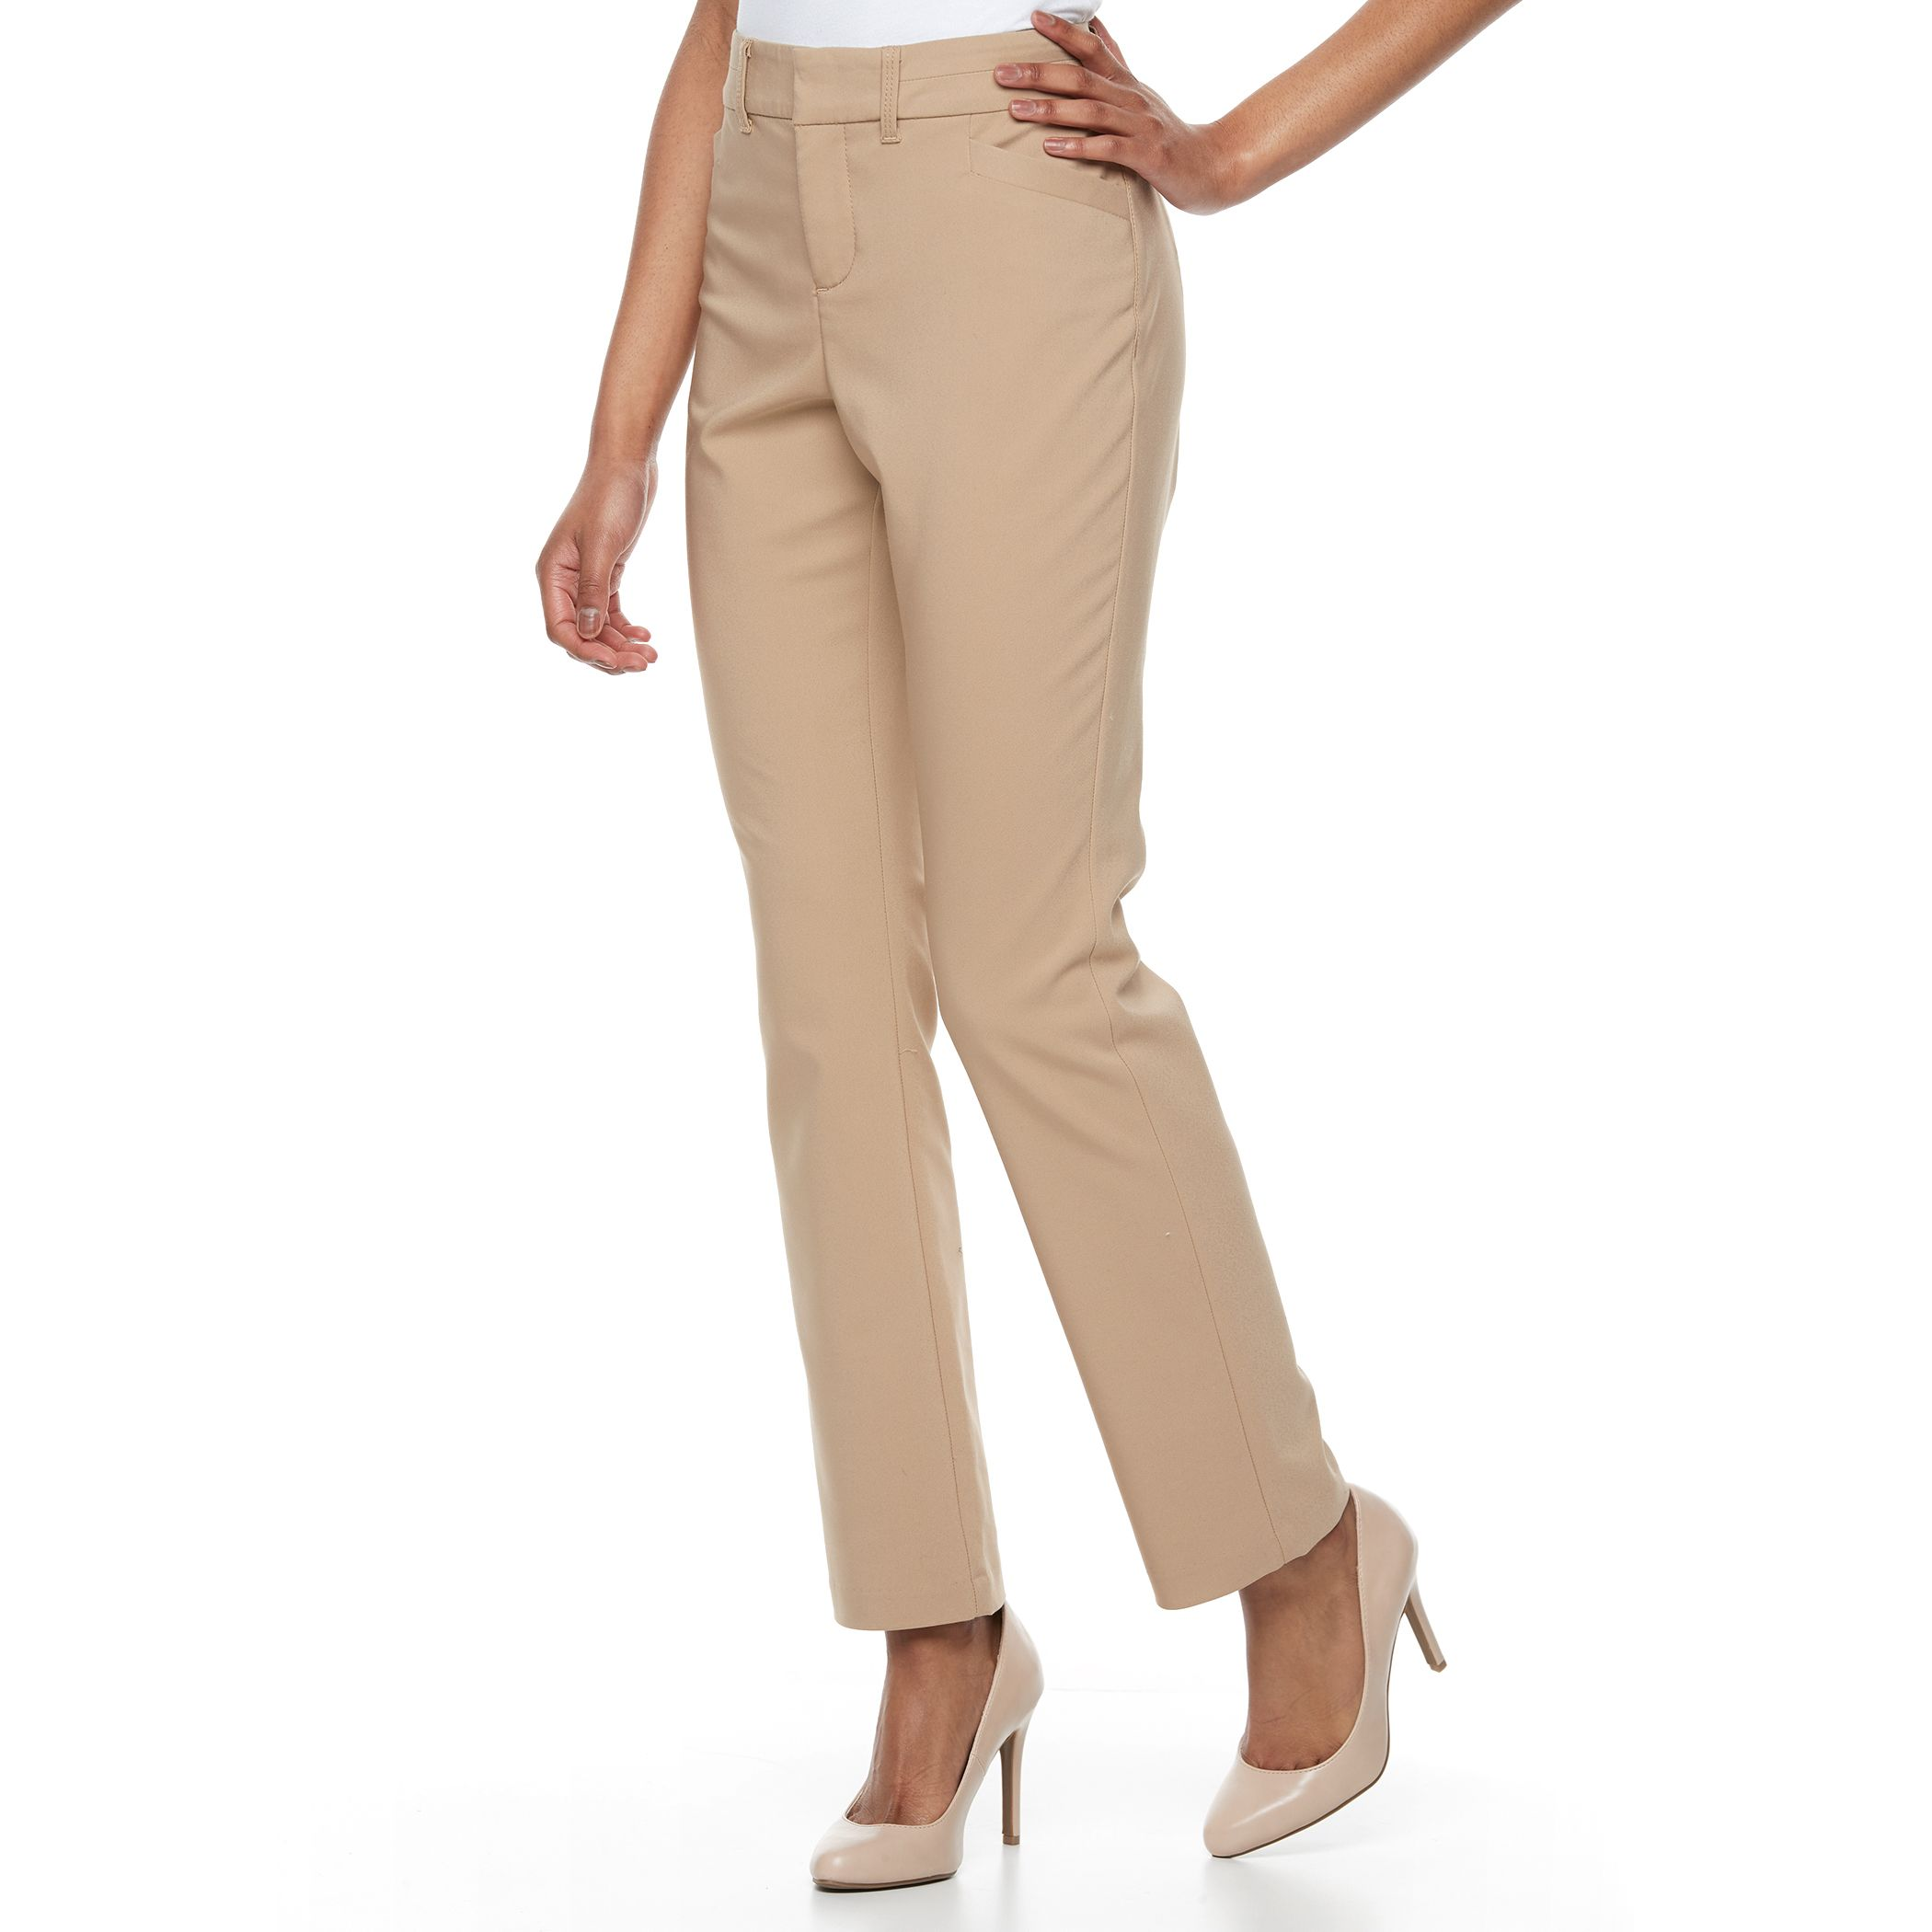 Womens Khaki Dress Pants u5y8Lms0